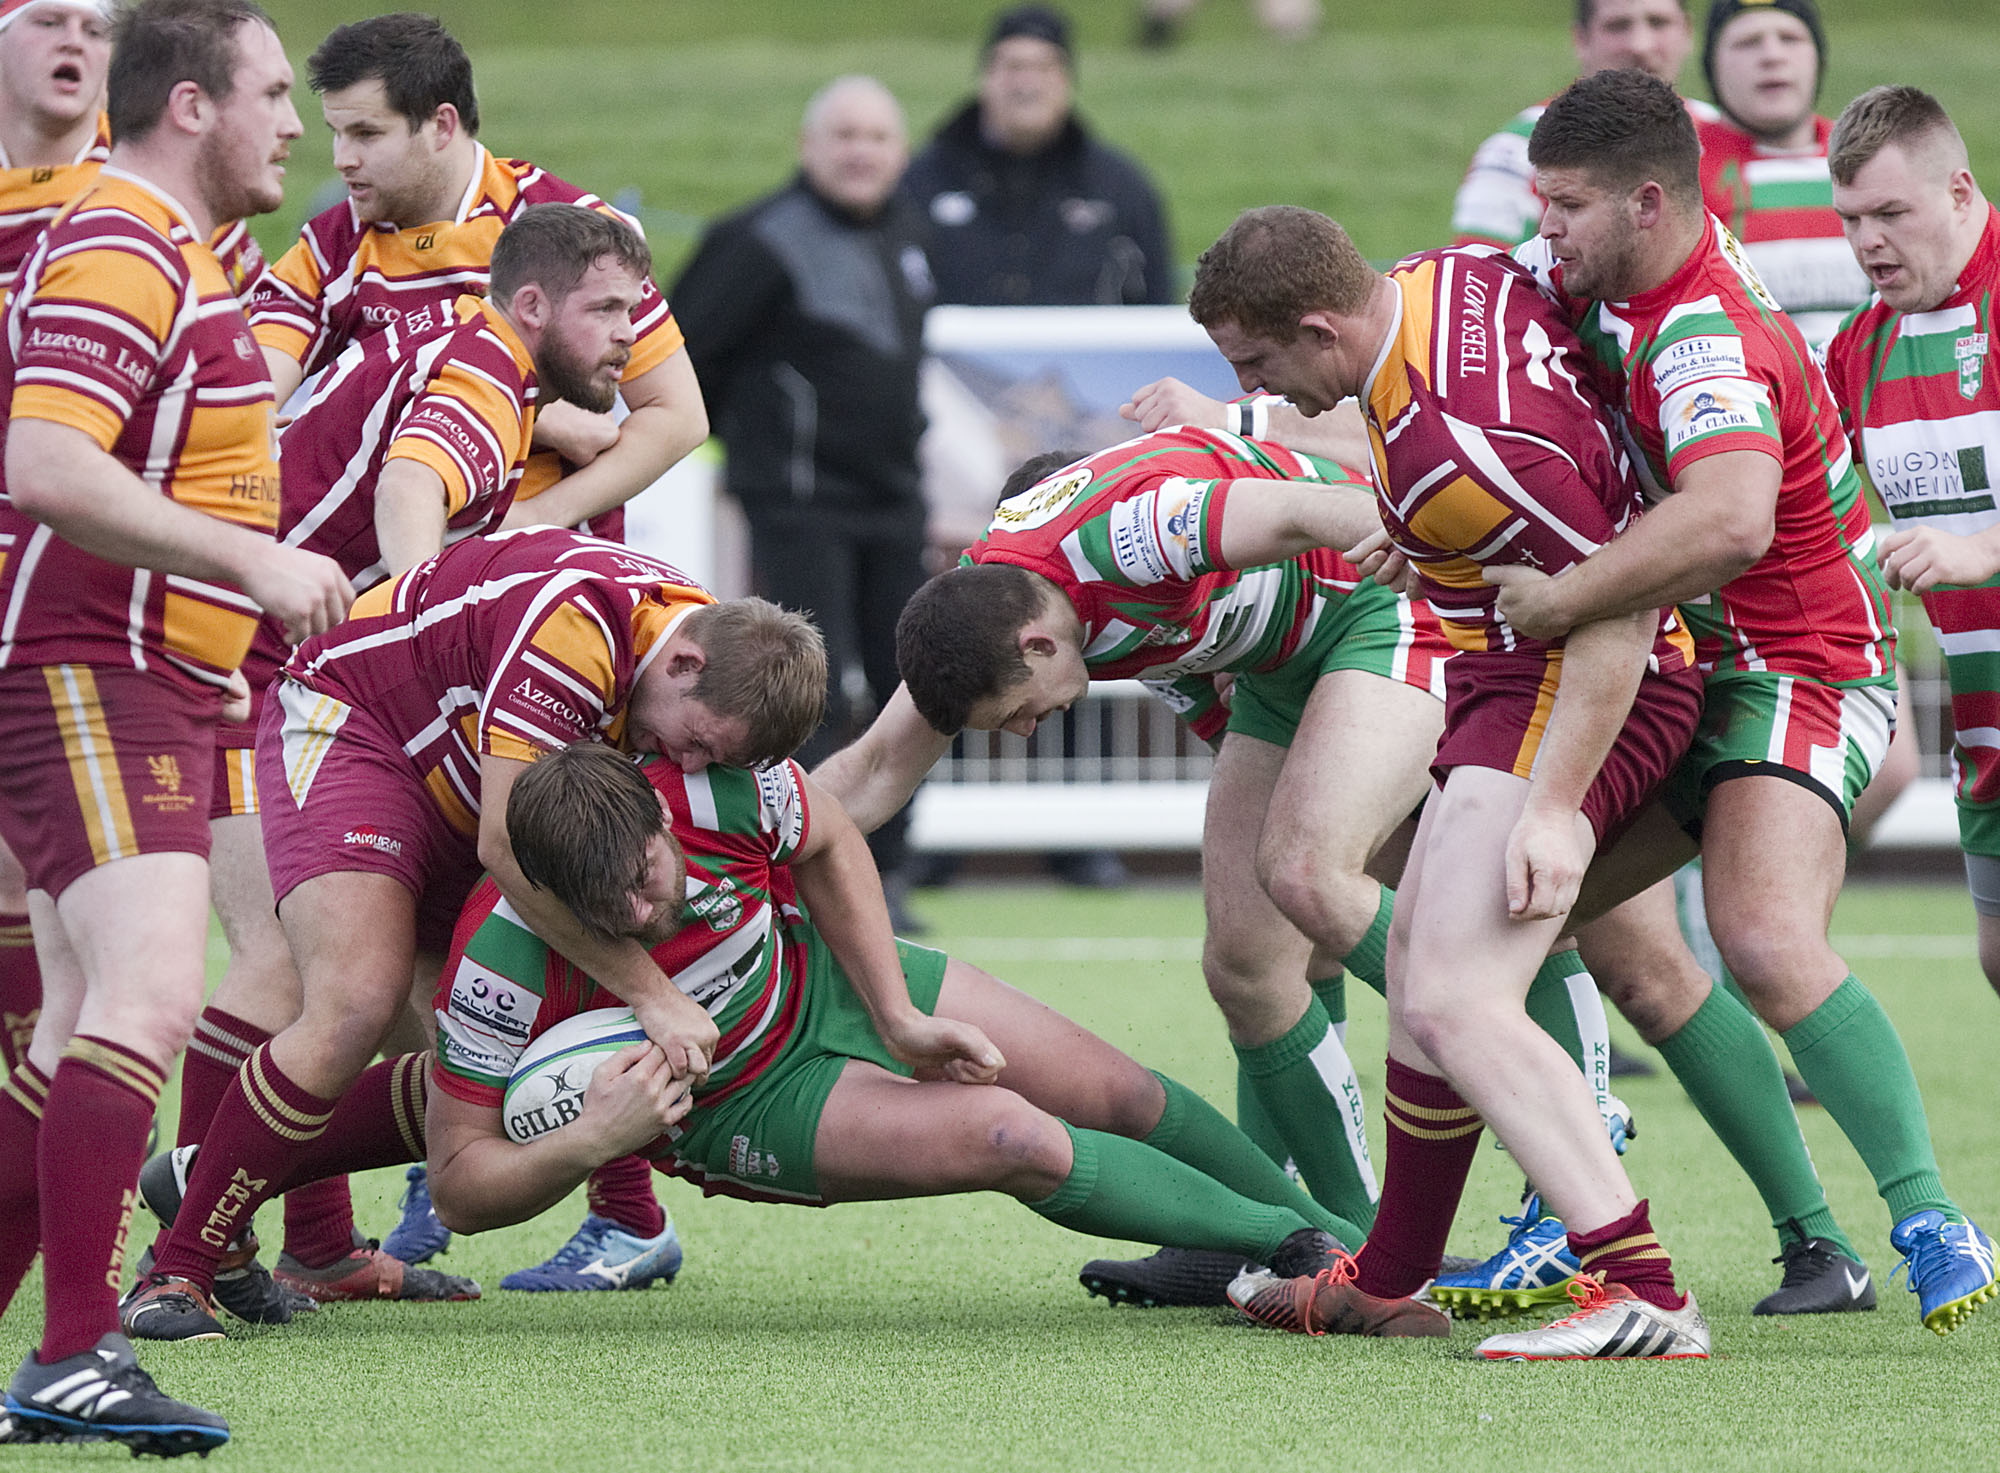 Rob Baldwin goes to ground for Keighley in what was his last game for the club Picture: Charlie Perry